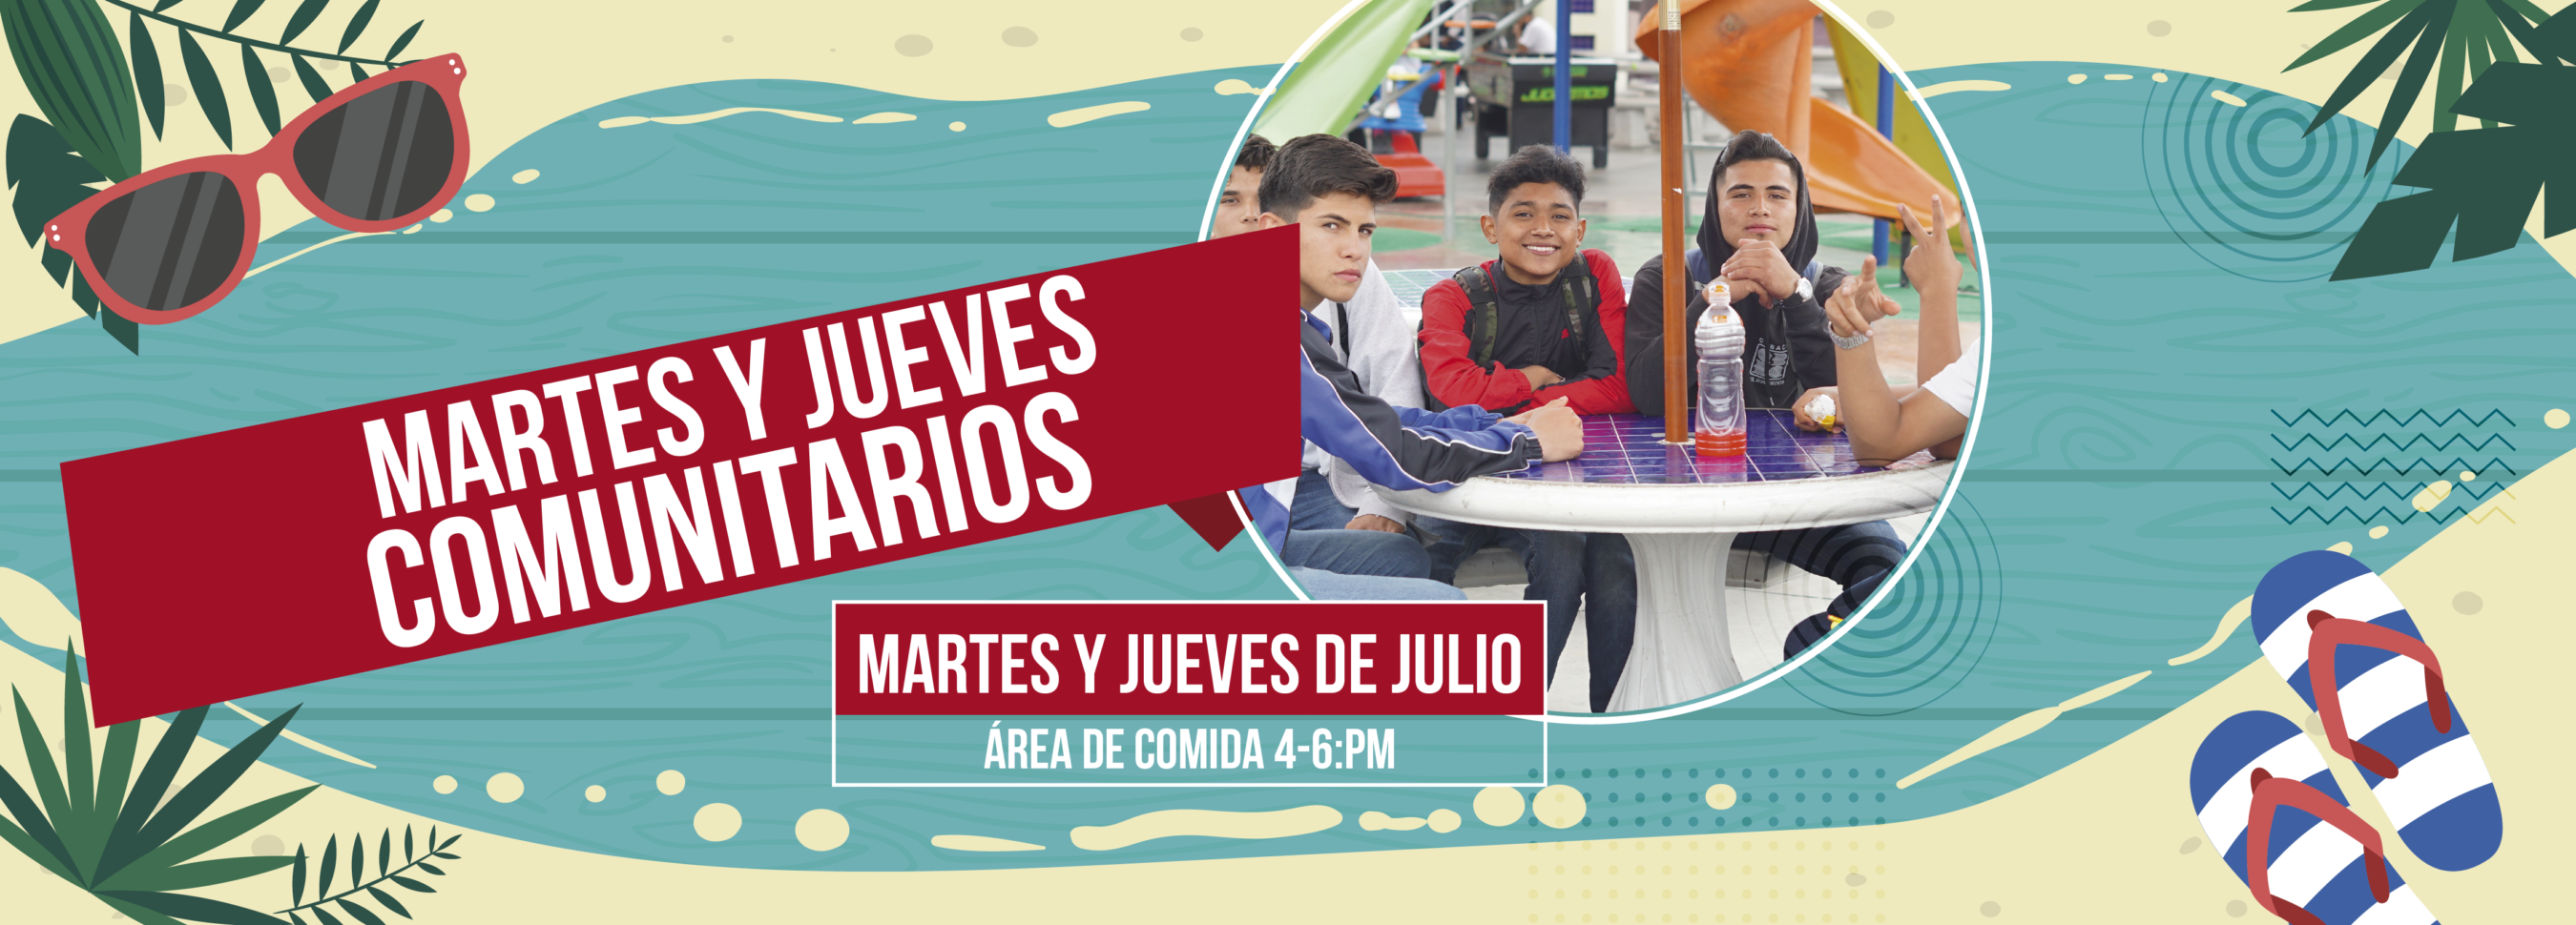 banners julio-04